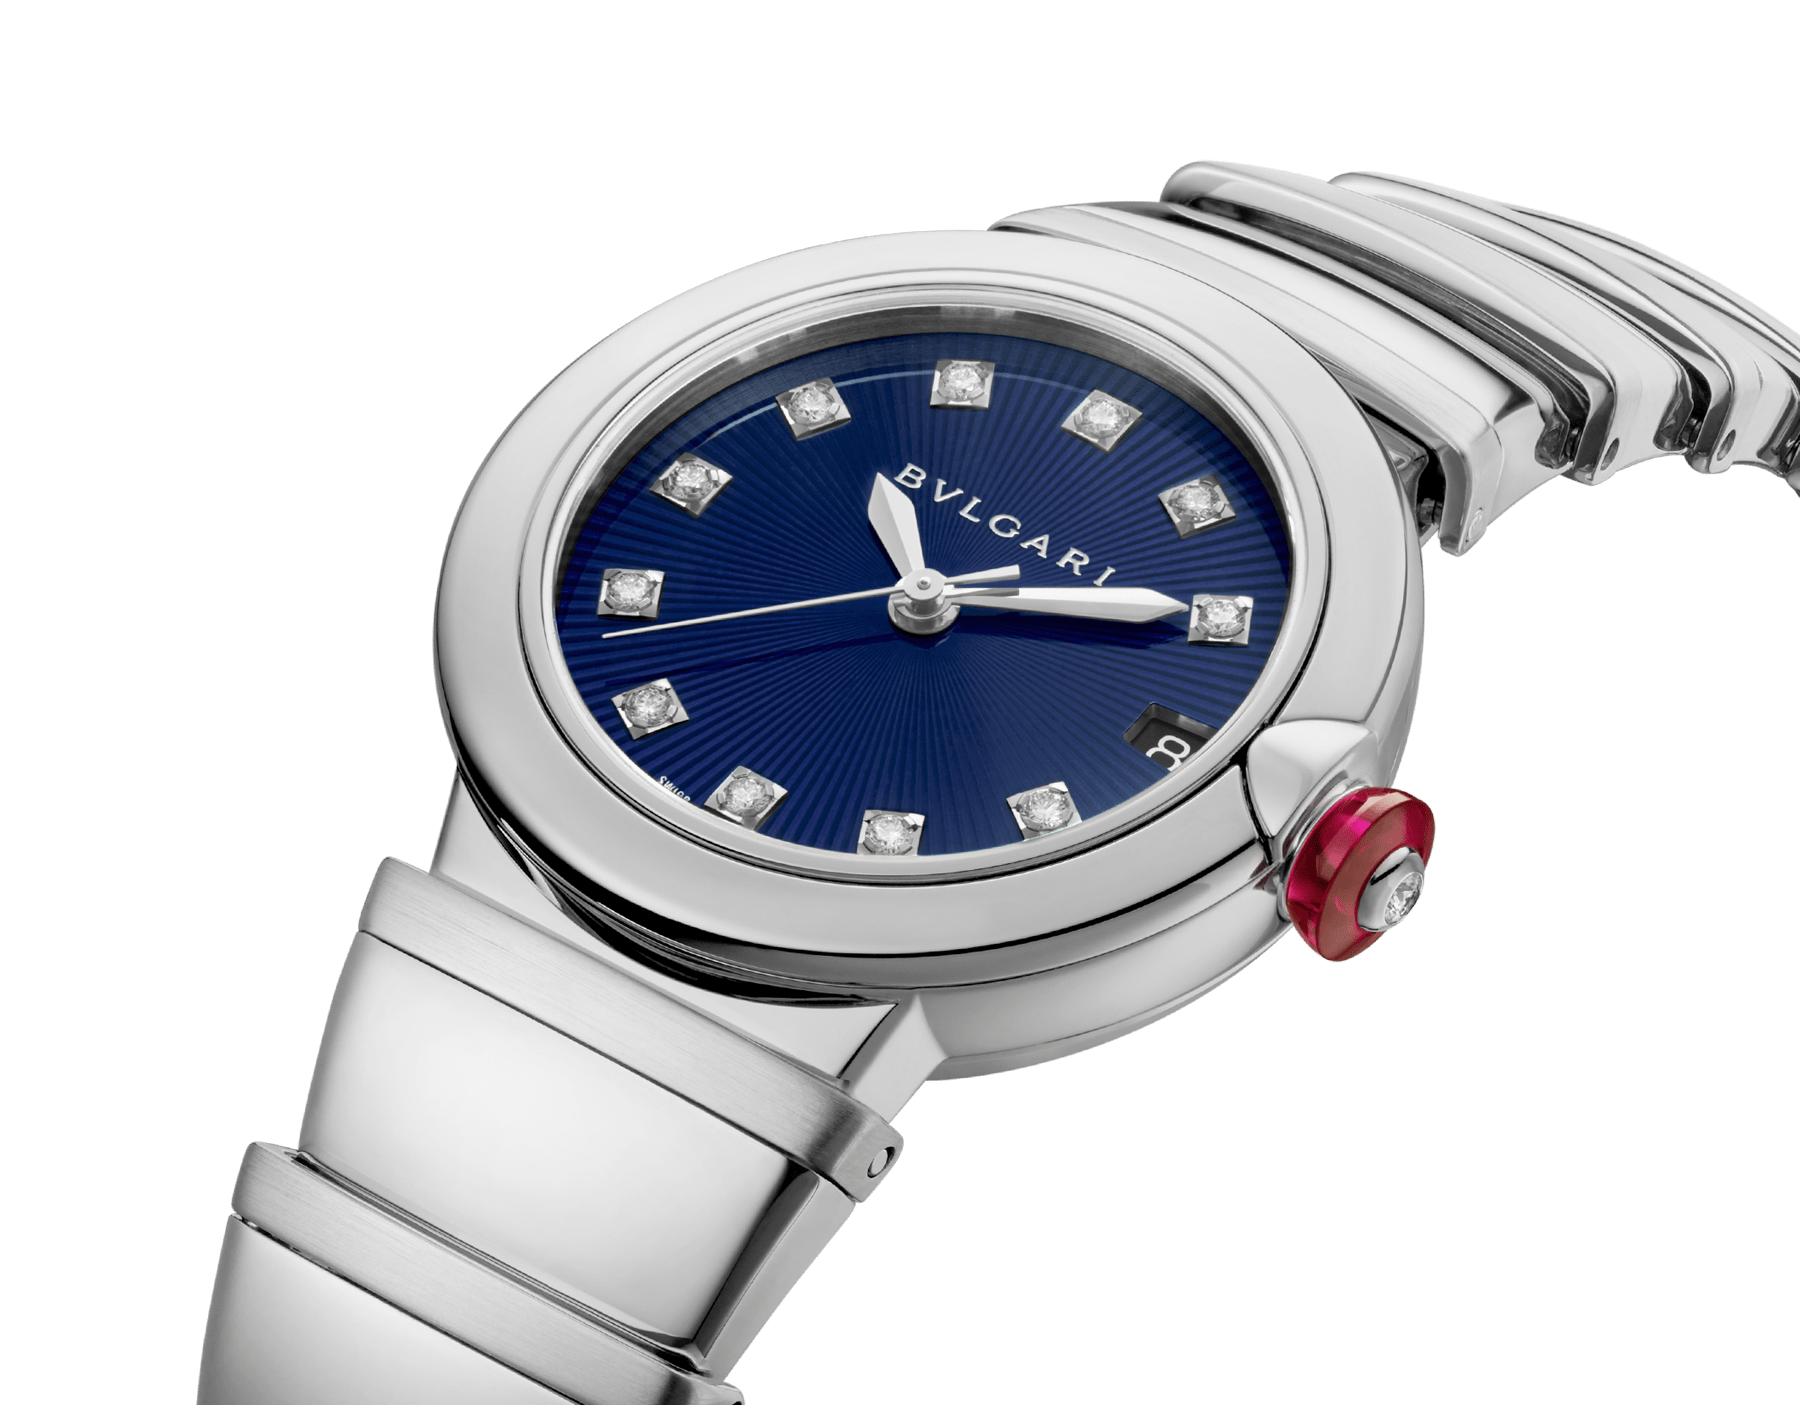 LVCEA watch in stainless steel case and bracelet, with blue dial and diamond indexes. 102564 image 2